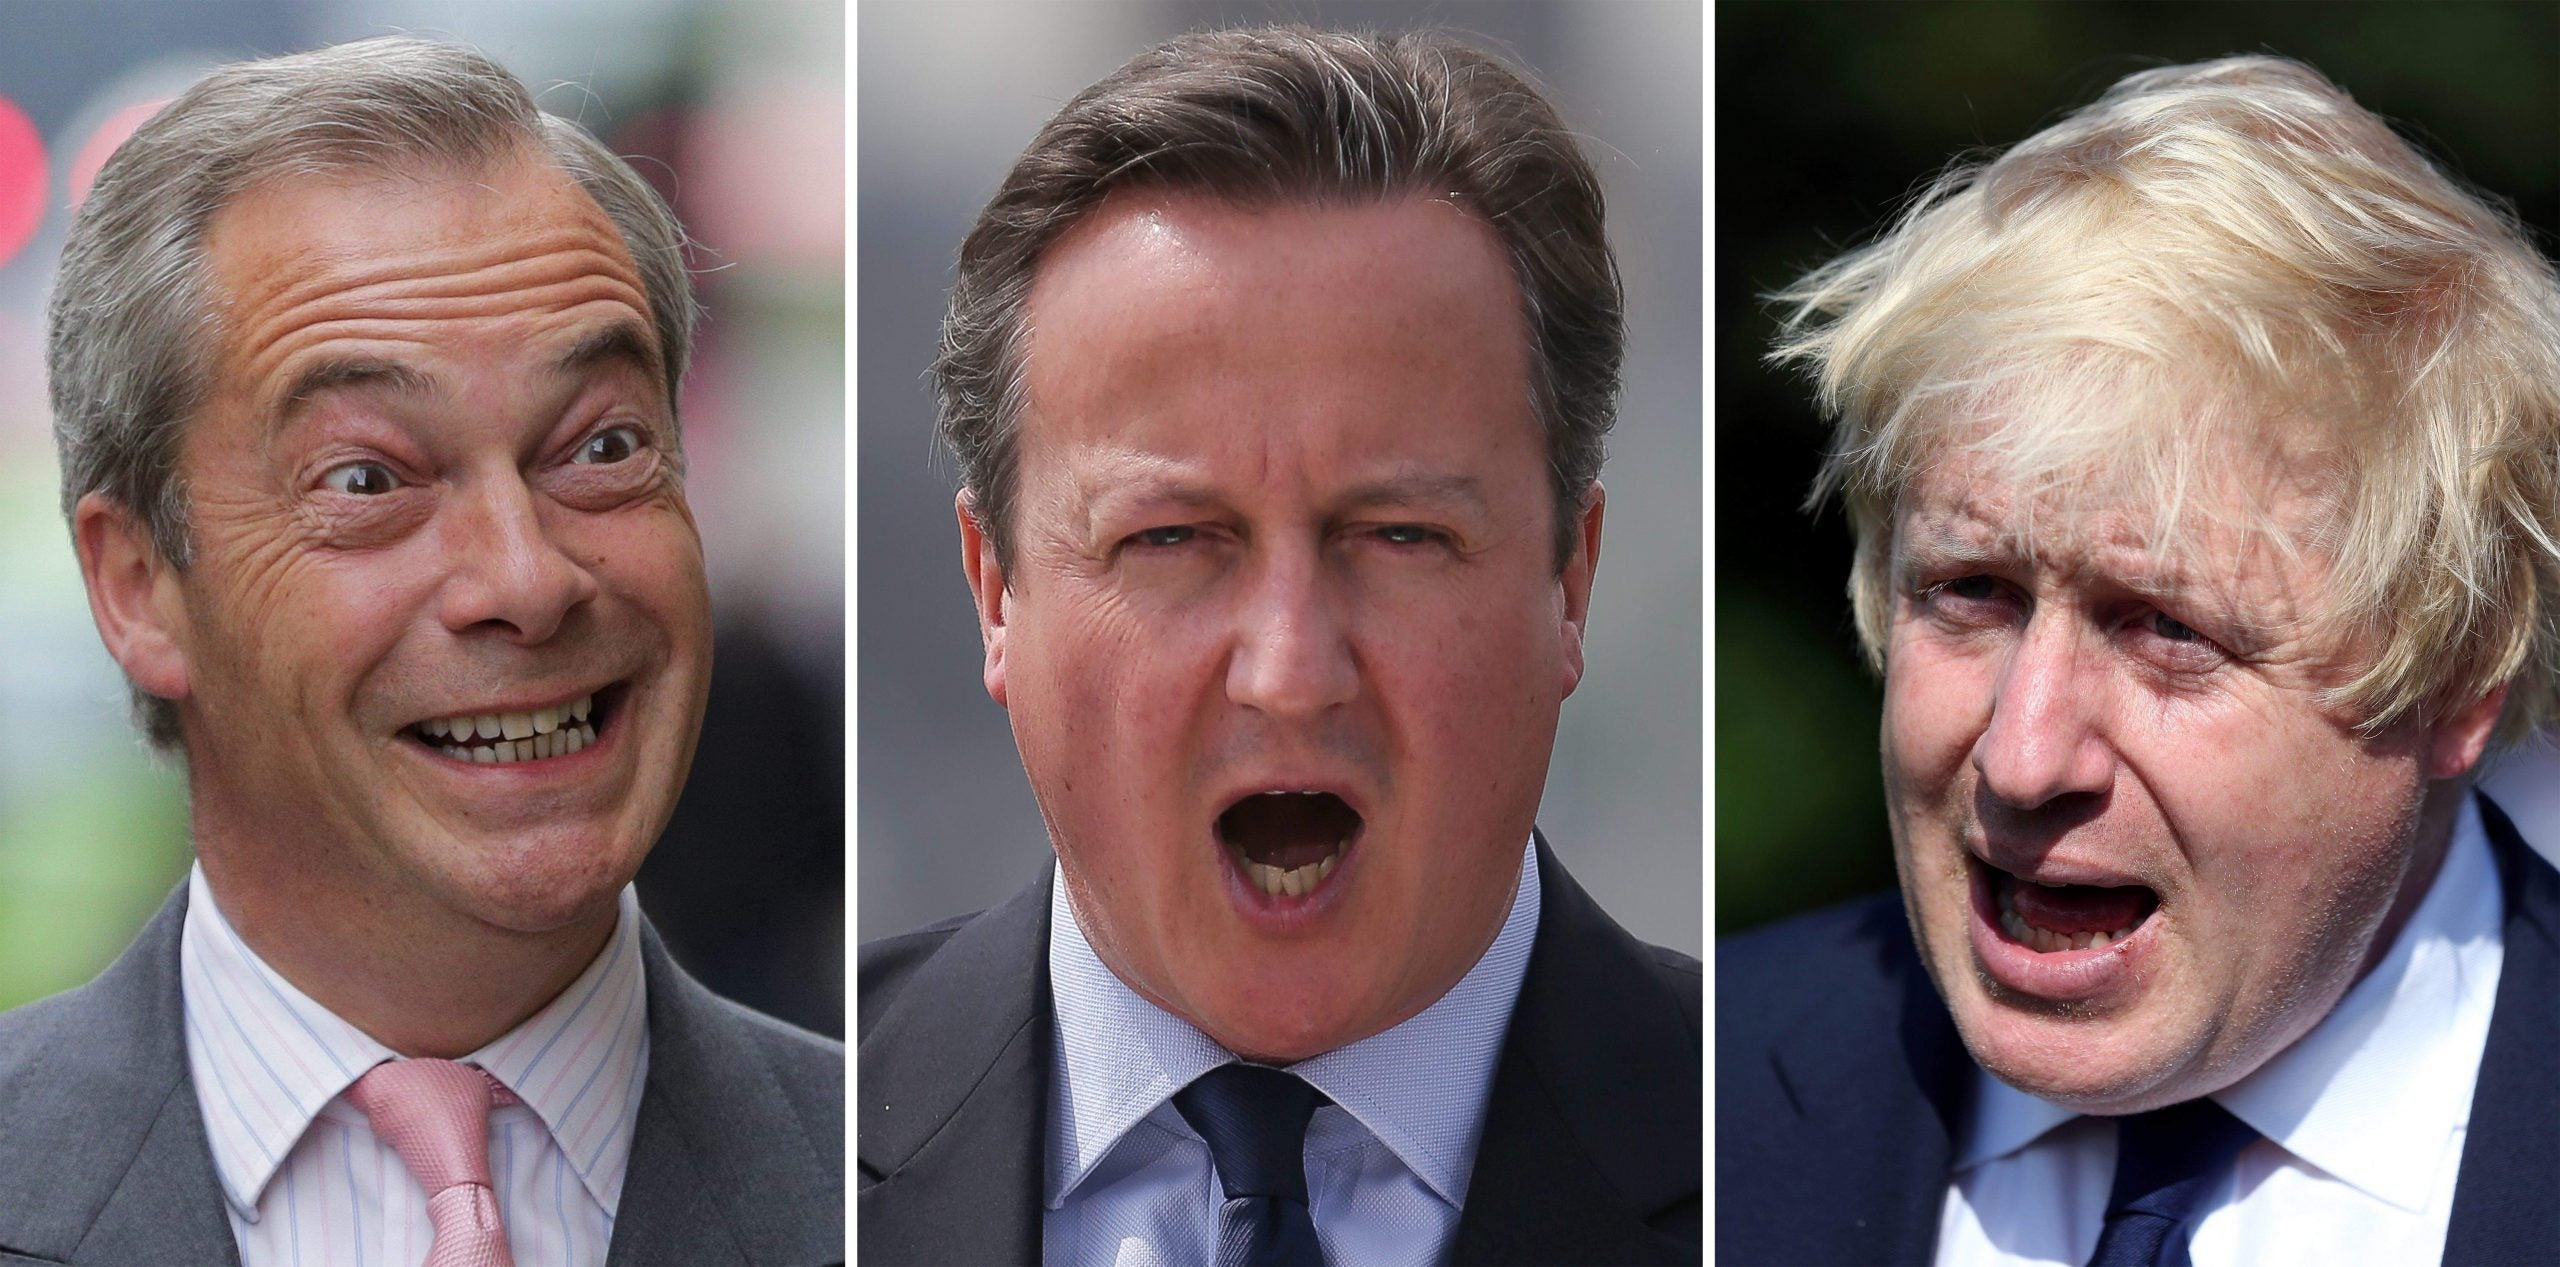 Neither side told the truth about immigration in the EU referendum campaign